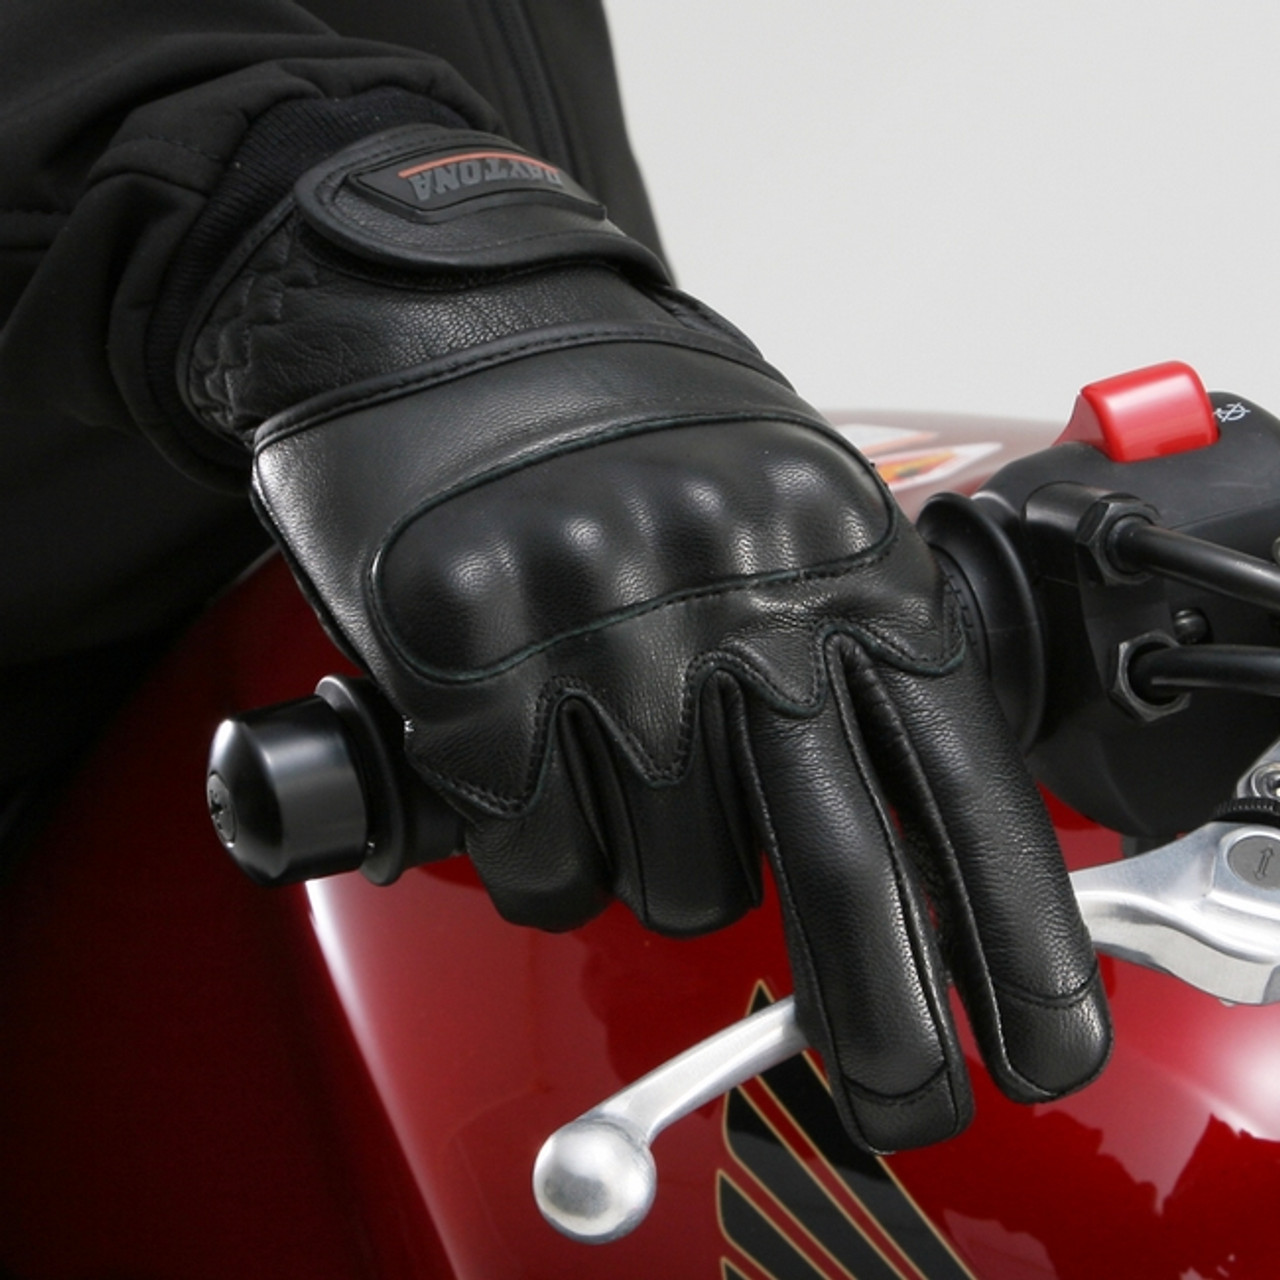 Henly Begins (Japan) Goat Skin Motorcycle Gloves Protection Type, Black - Free Shipping NZ